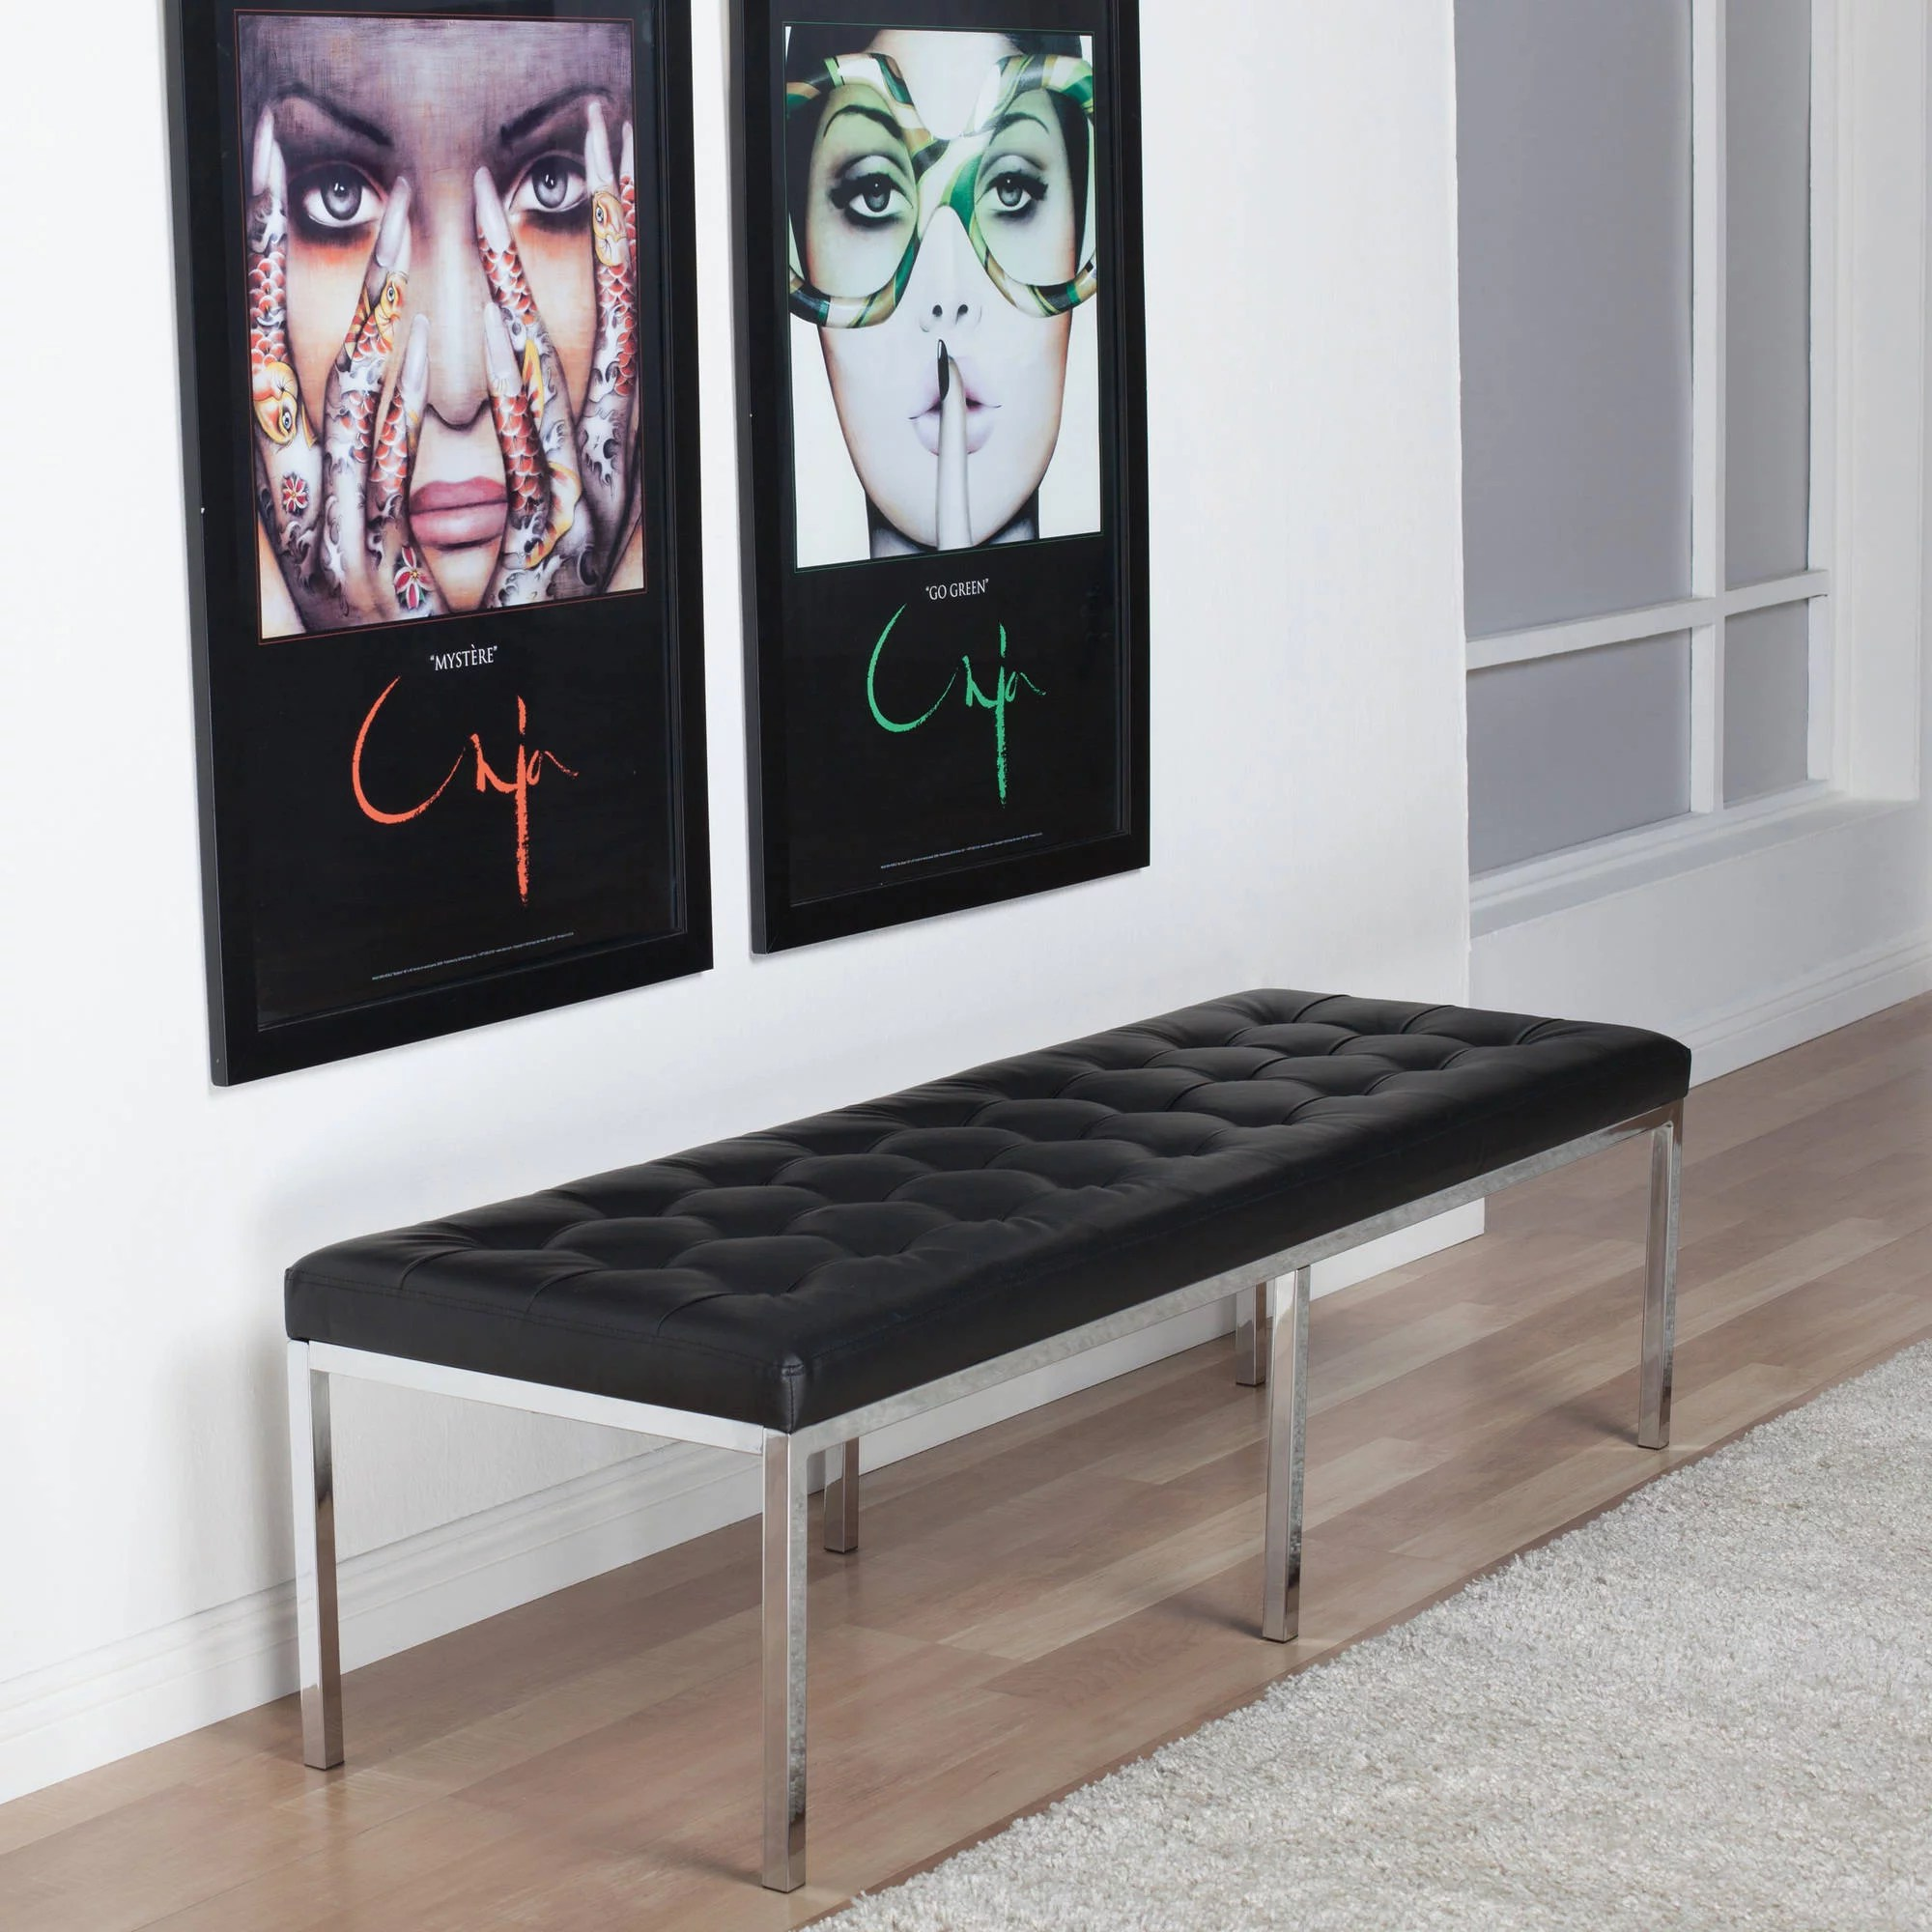 studio designs home 60 wide lintel tufted bench ottoman in black bonded leather and chrome metal